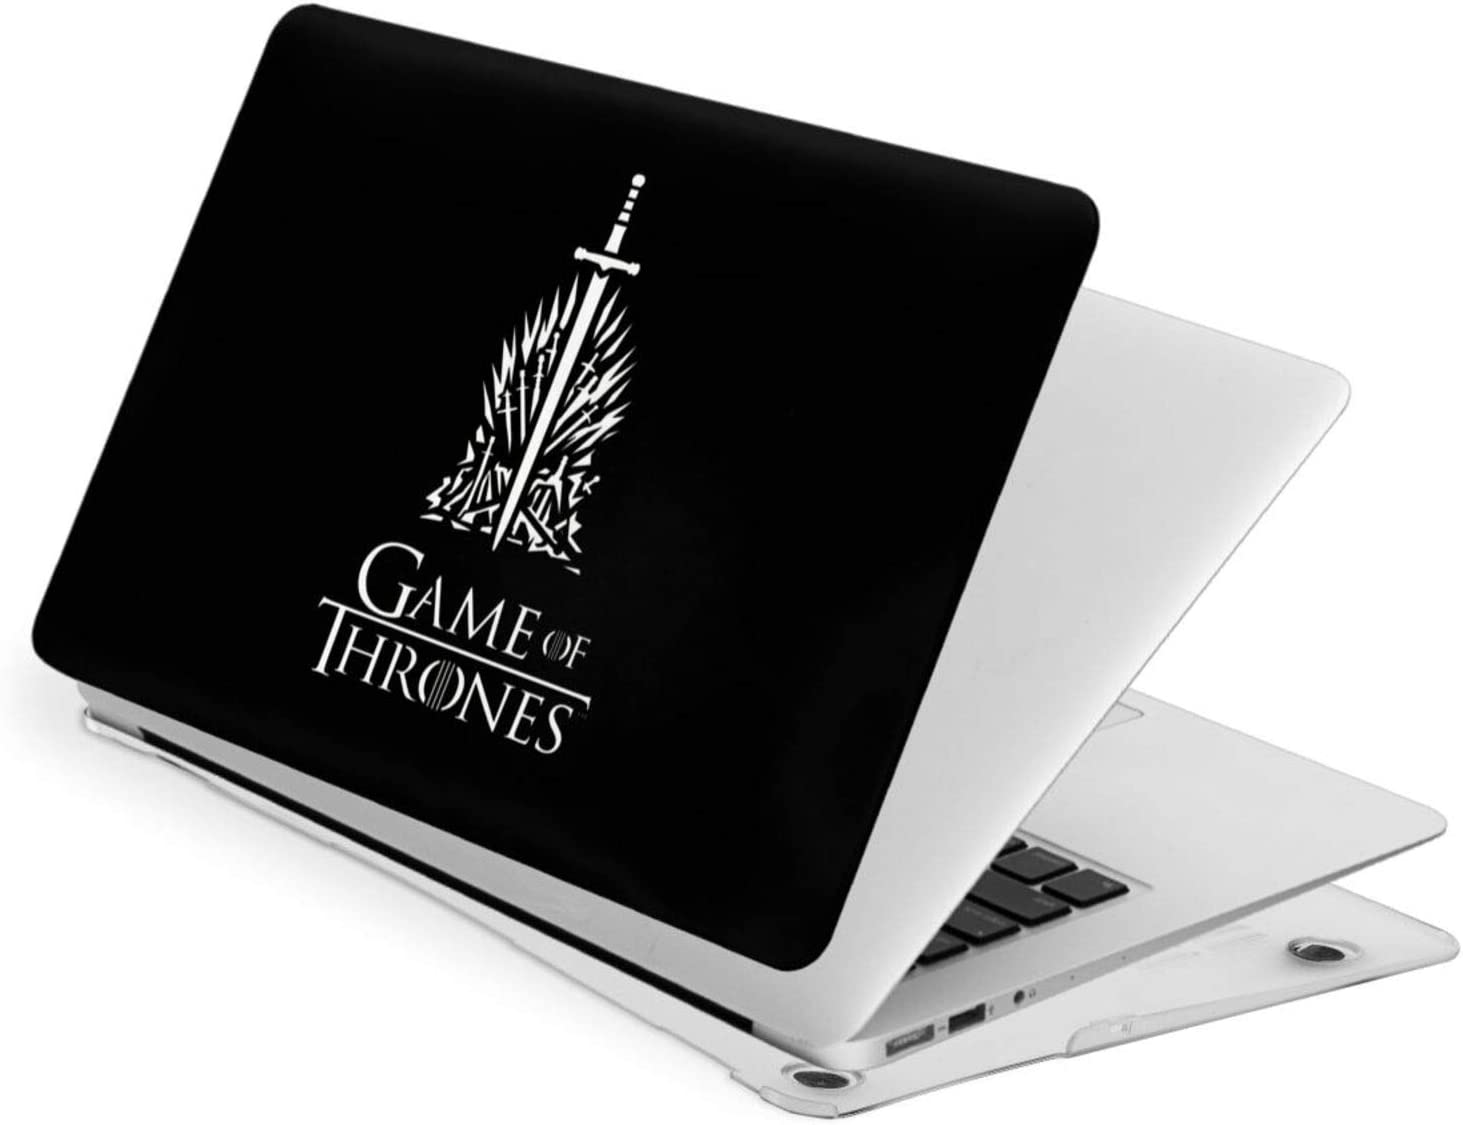 JHJHJ Game of Thrones-Logo Laptop Case Fortouch13 Hard Case Shell Cover + A Keyboard Swipe The Quality of A Material is Frivolous,Good Heat Dissipation Performance